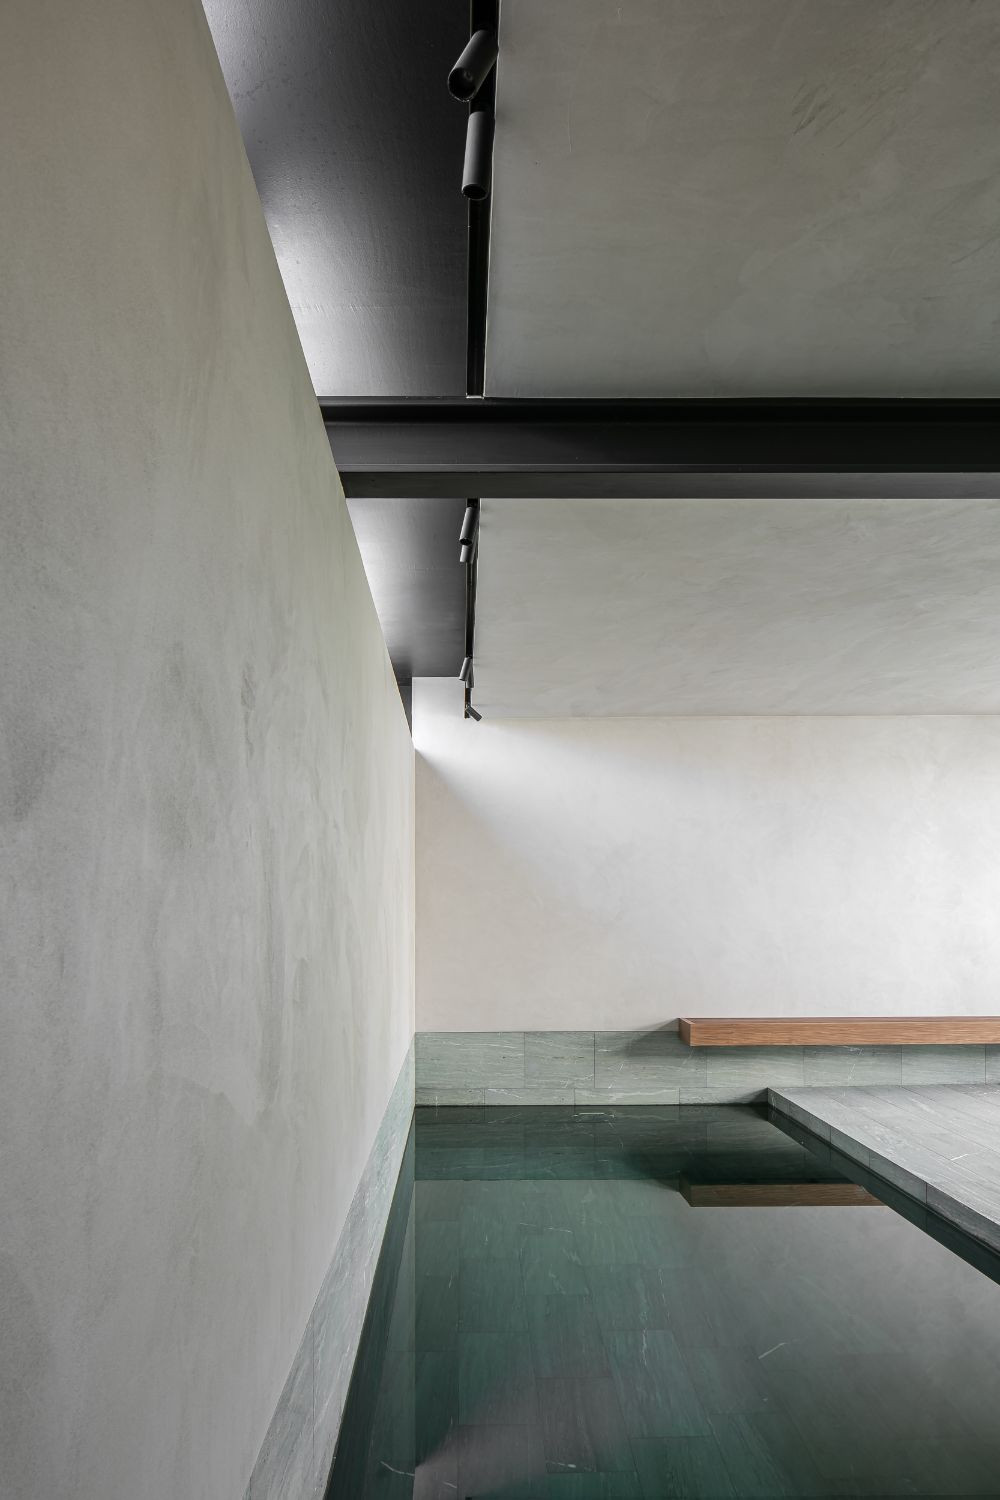 Rietveldprojects - House MP - Indoor swimminpool - Pic by Cafeïne 8